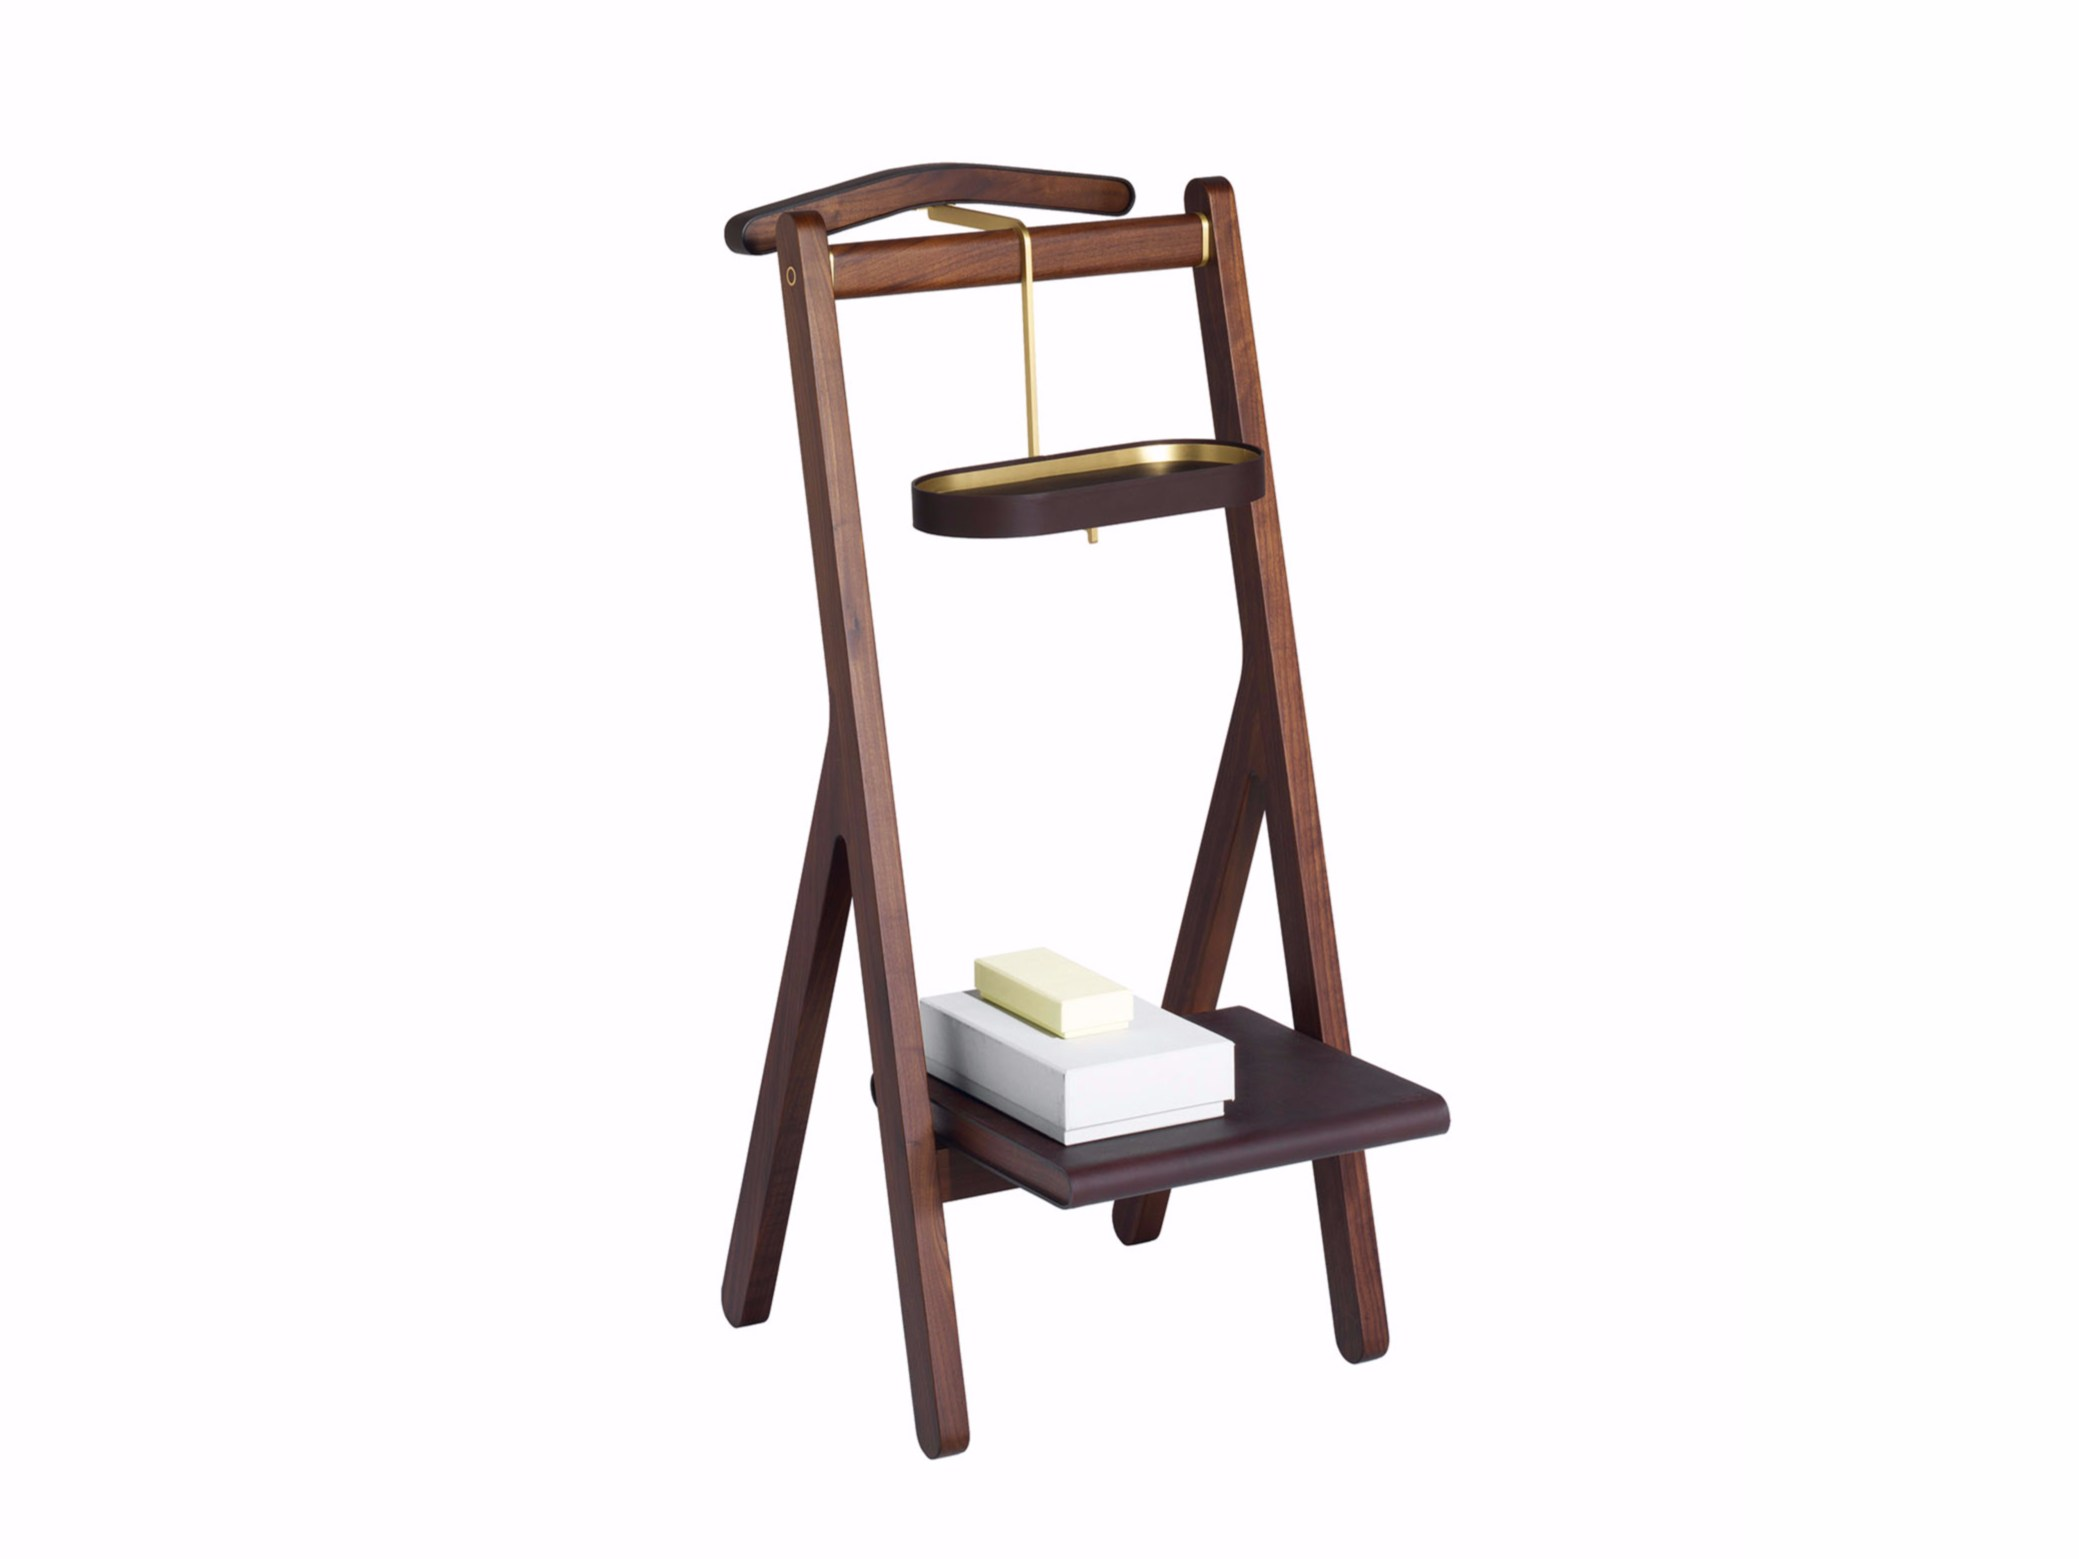 chair valet stand. chair valet stand